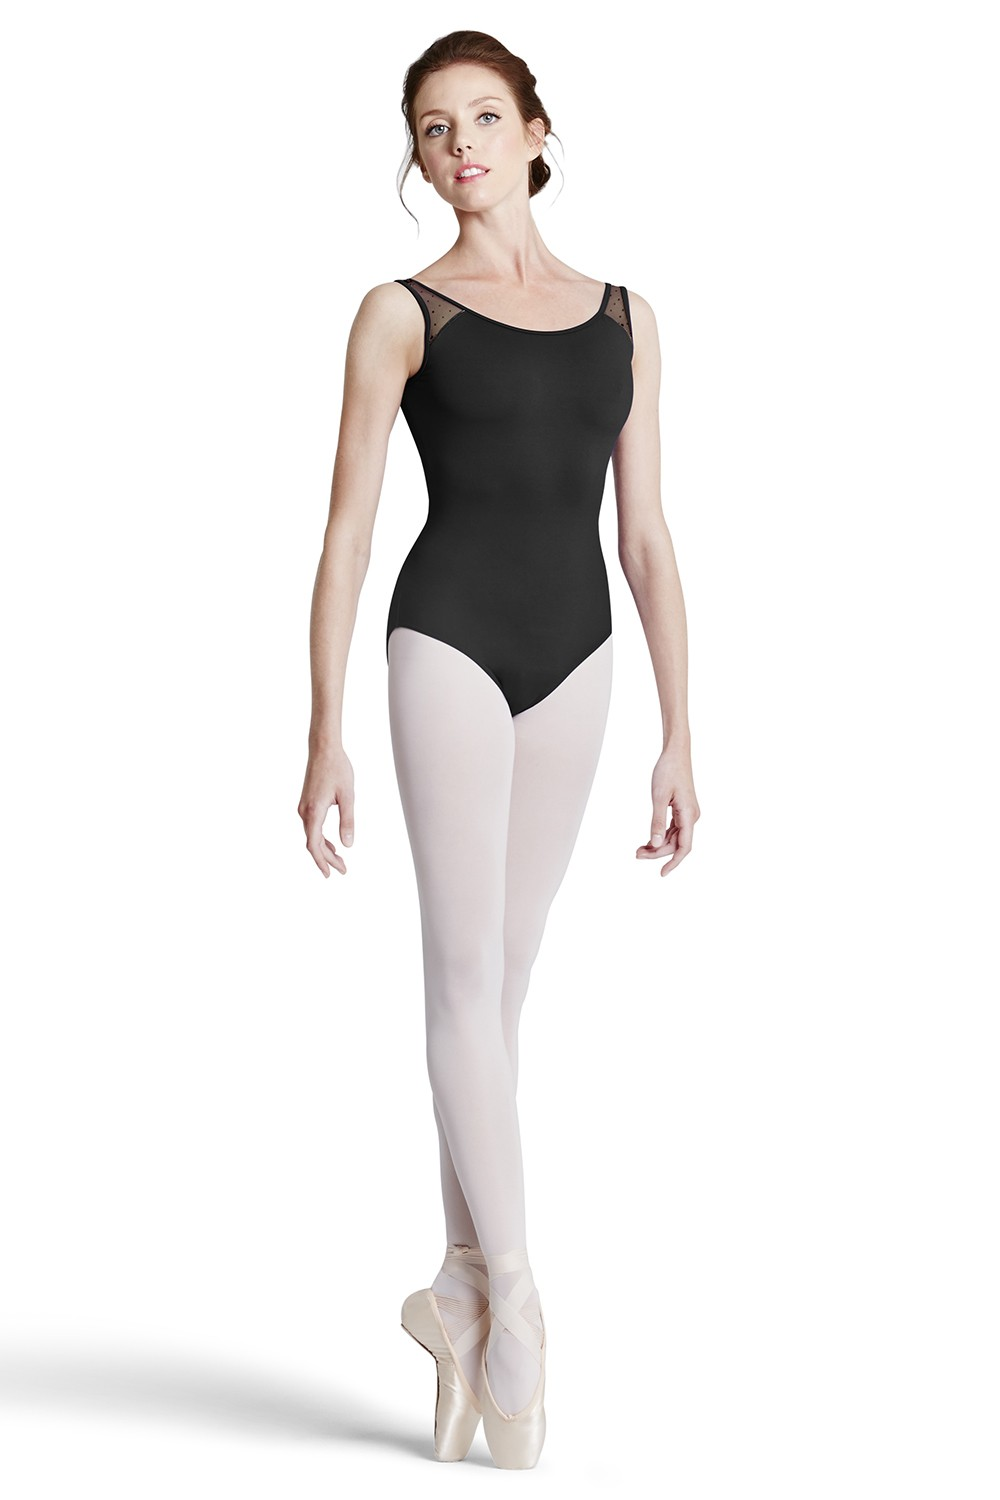 Flock Mesh Tank Leotard - Tween Women's Dance Leotards